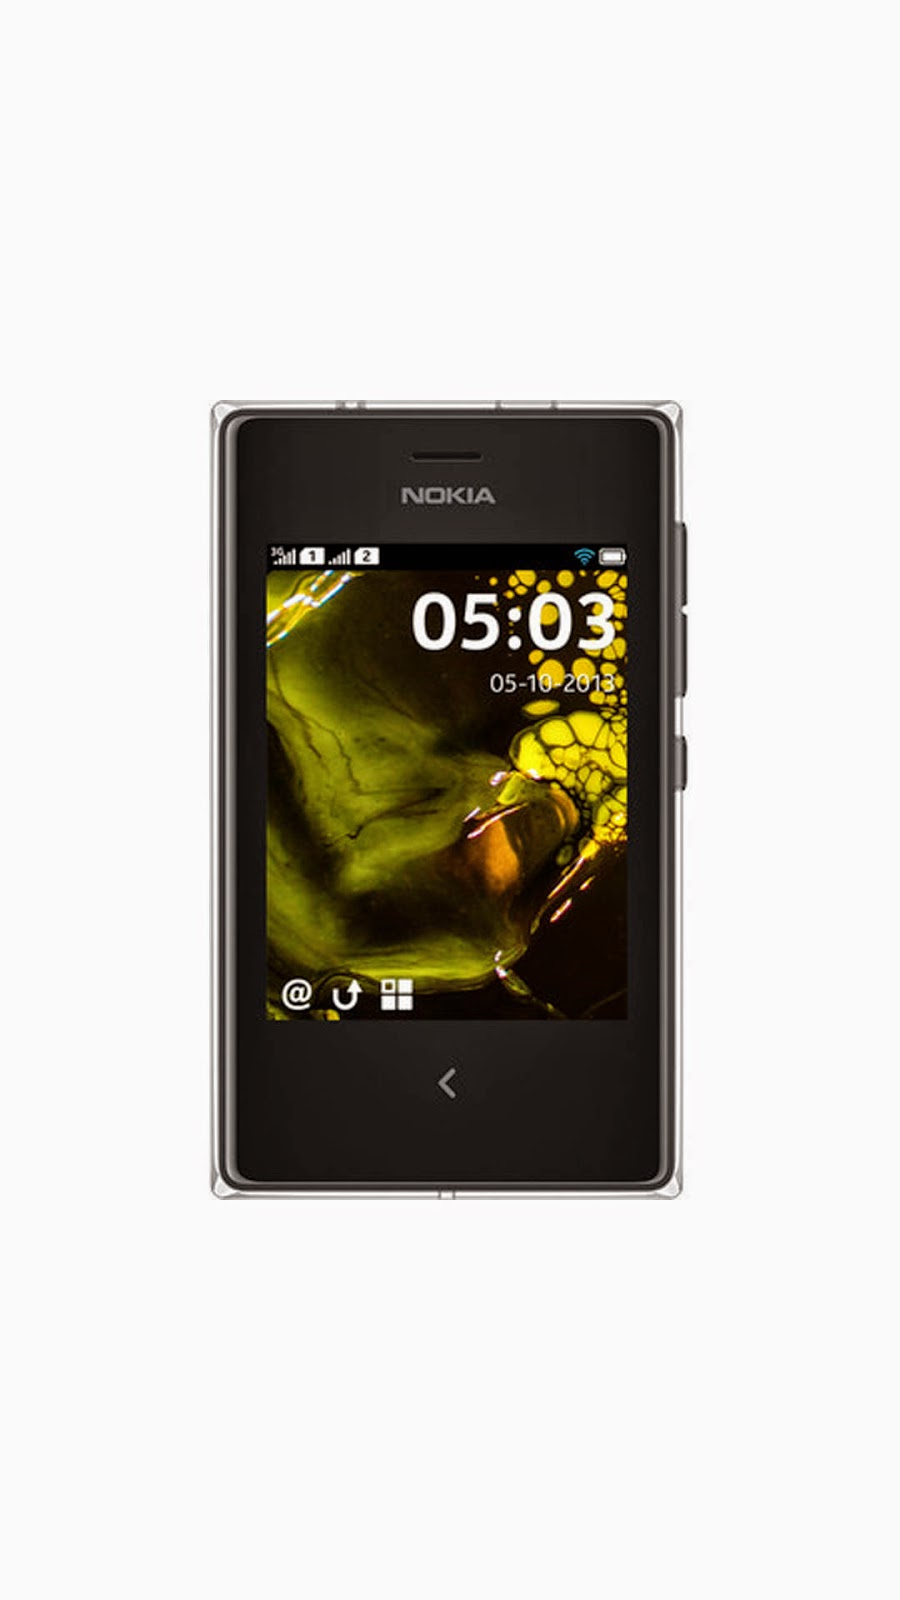 Paytm : Nokia Asha 503 for worth Rs 7399 for Rs.5279